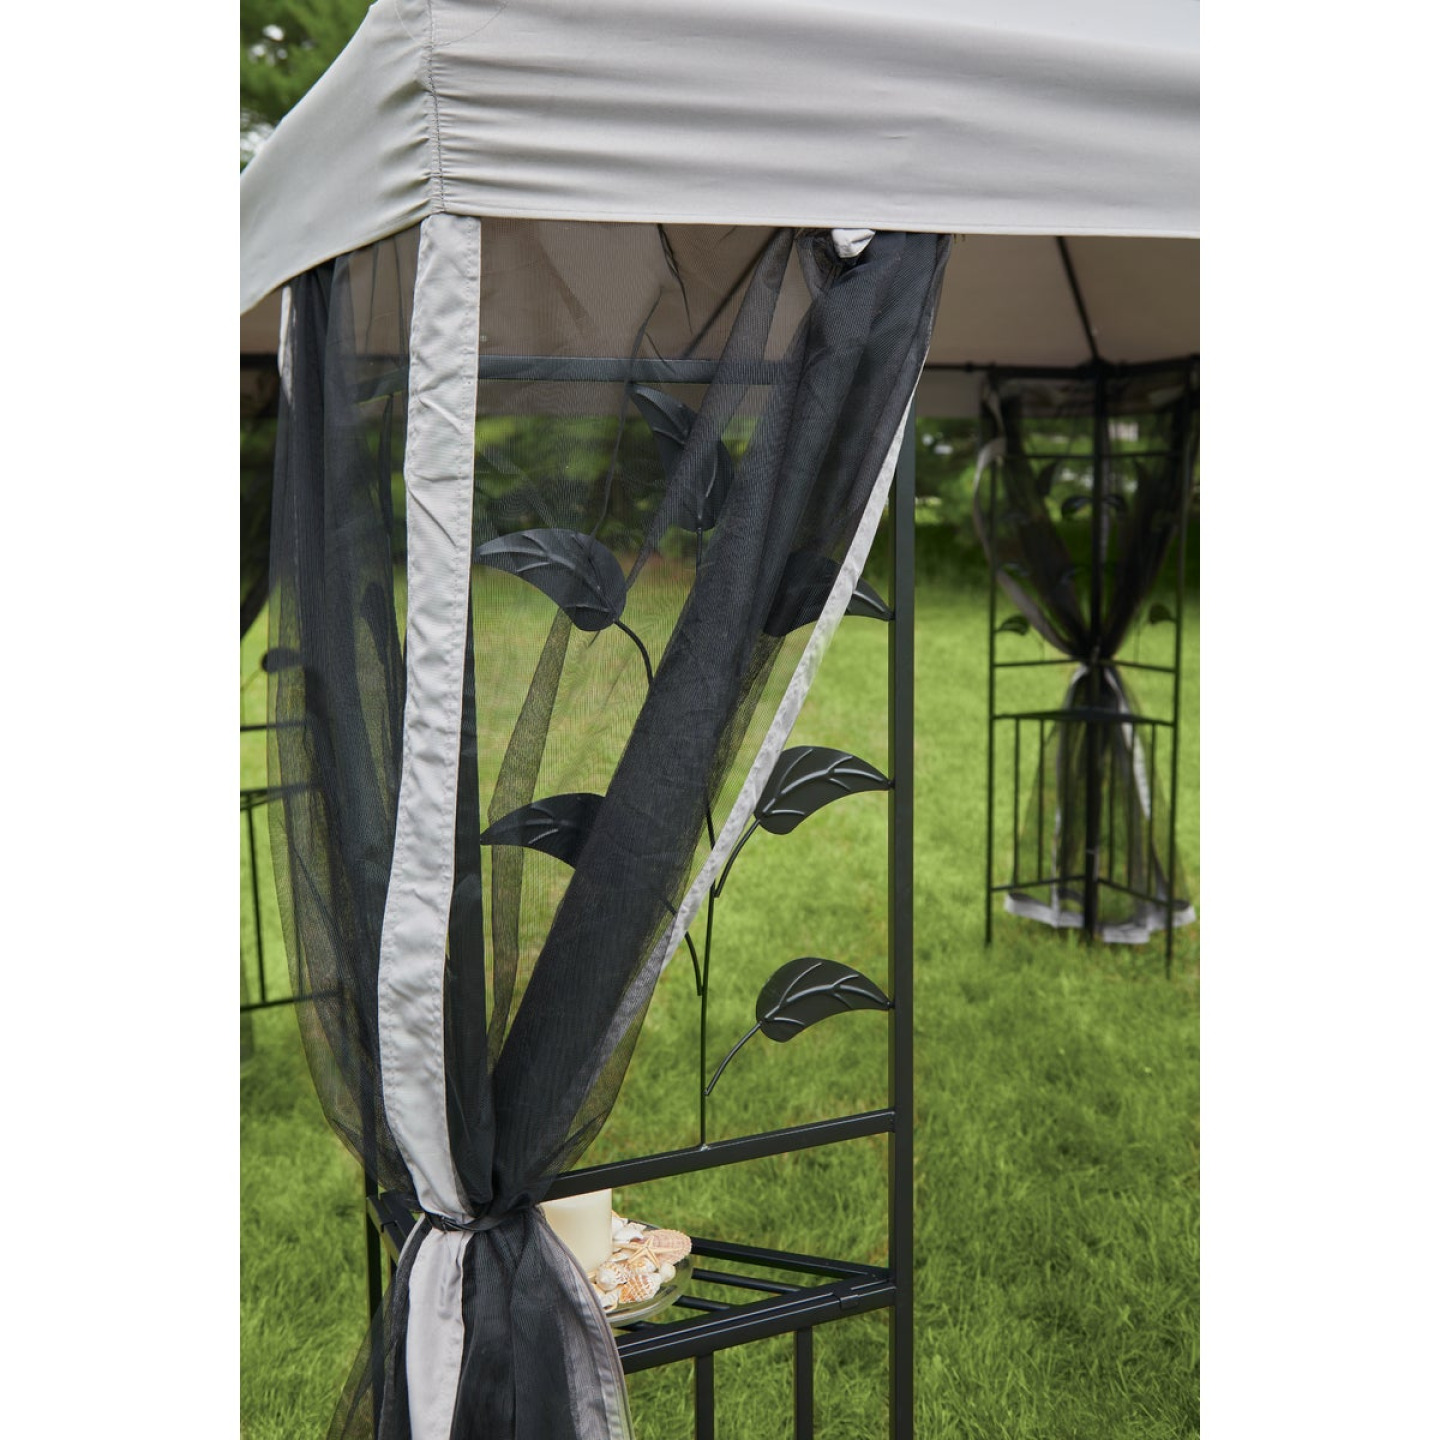 Outdoor Expressions 12 Ft. x 12 Ft. Gray & Black Steel Gazebo with Sides Image 7